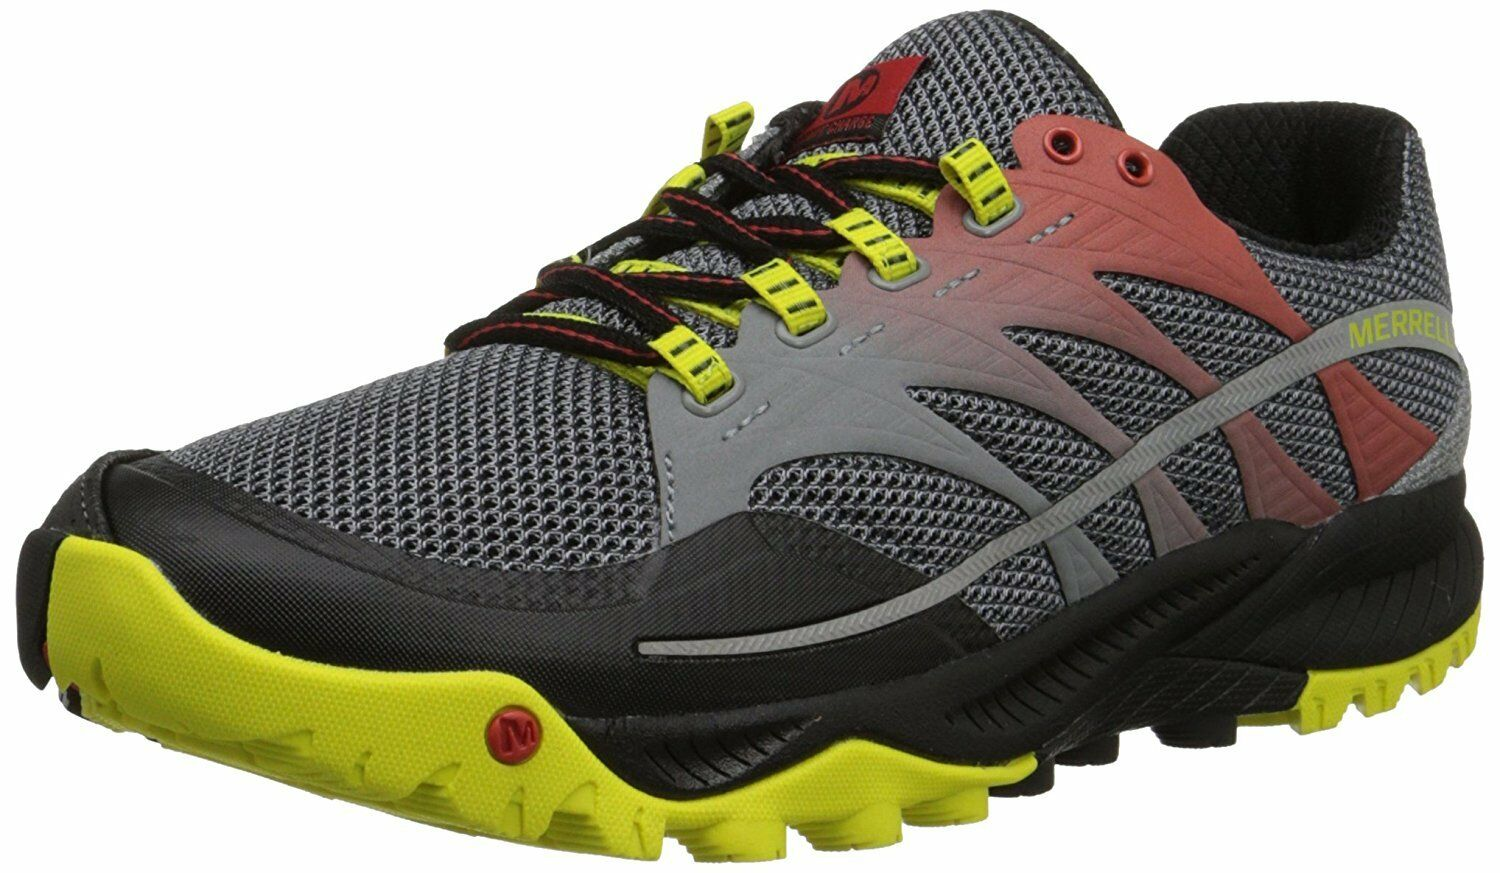 official photos c3160 d72c2 Merrell Men s All Out Charge Trail Running shoes Molten Lava Yellow 8.0M  Size nniatu1585-Athletic Shoes